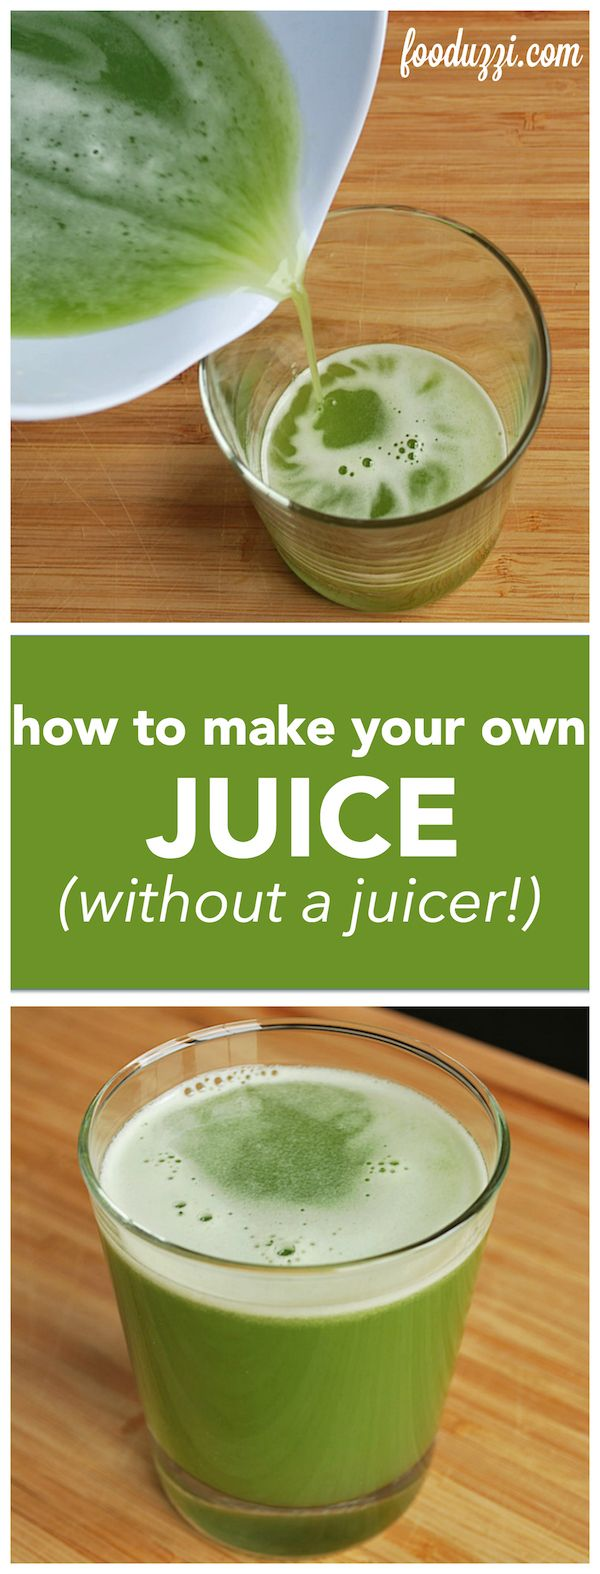 How to Make Your Own Juice Without a Juicer    fooduzzi.com recipes